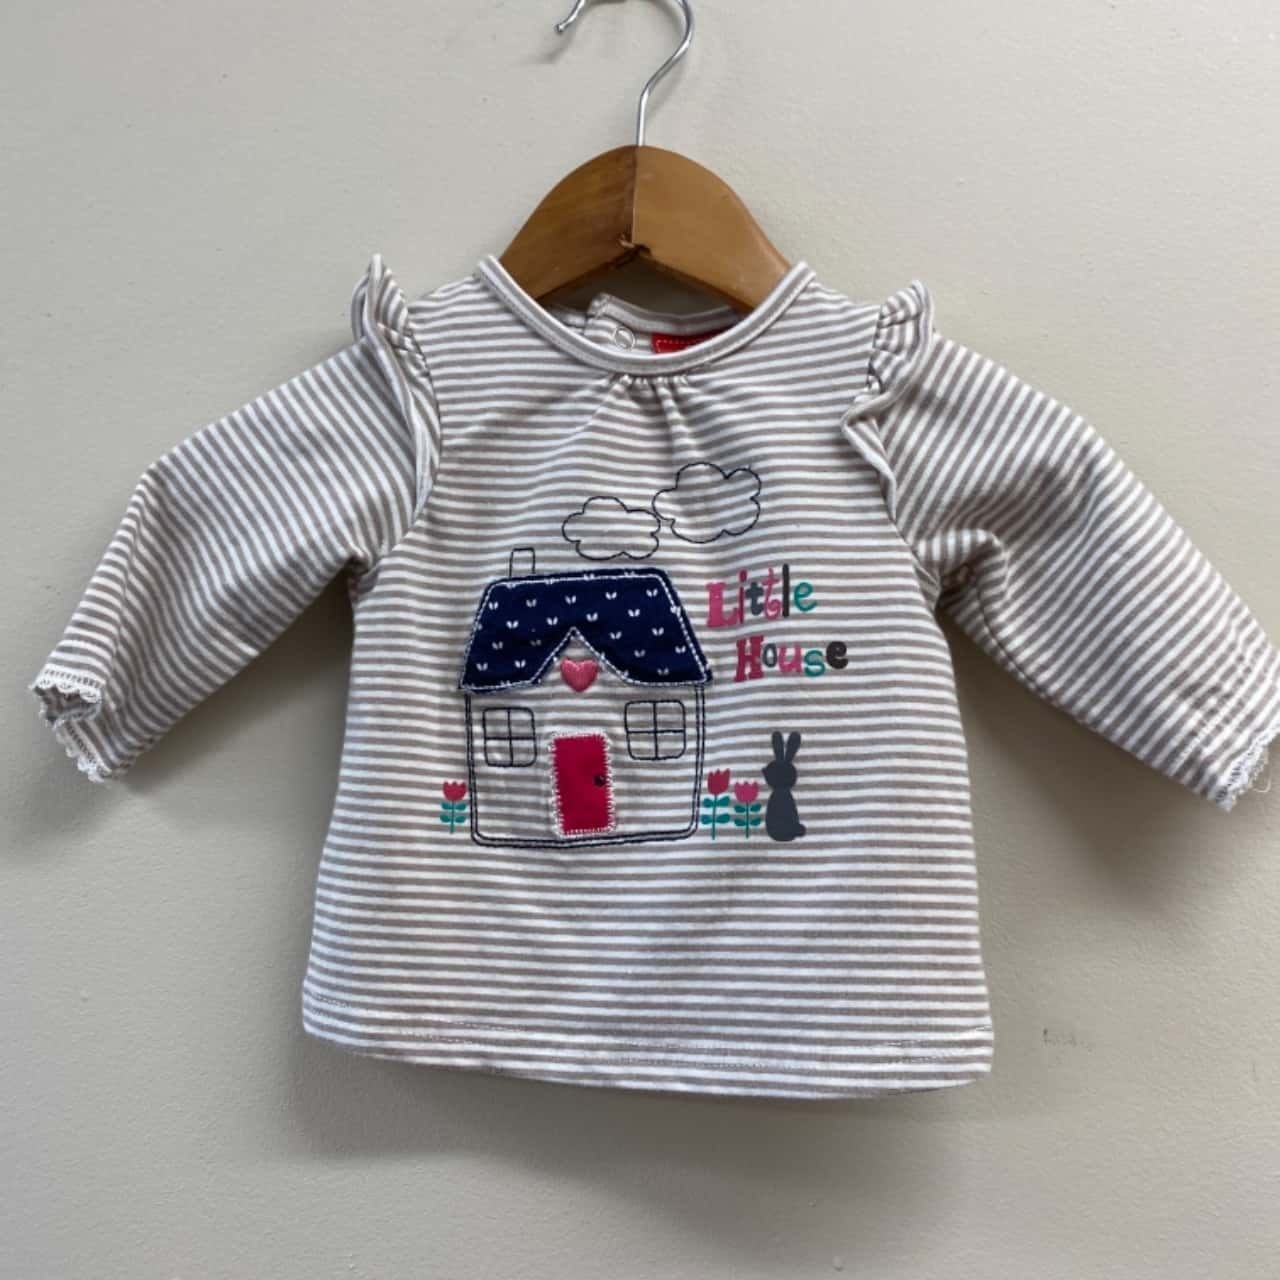 Sprout 000 Baby Brown and White Striped Top